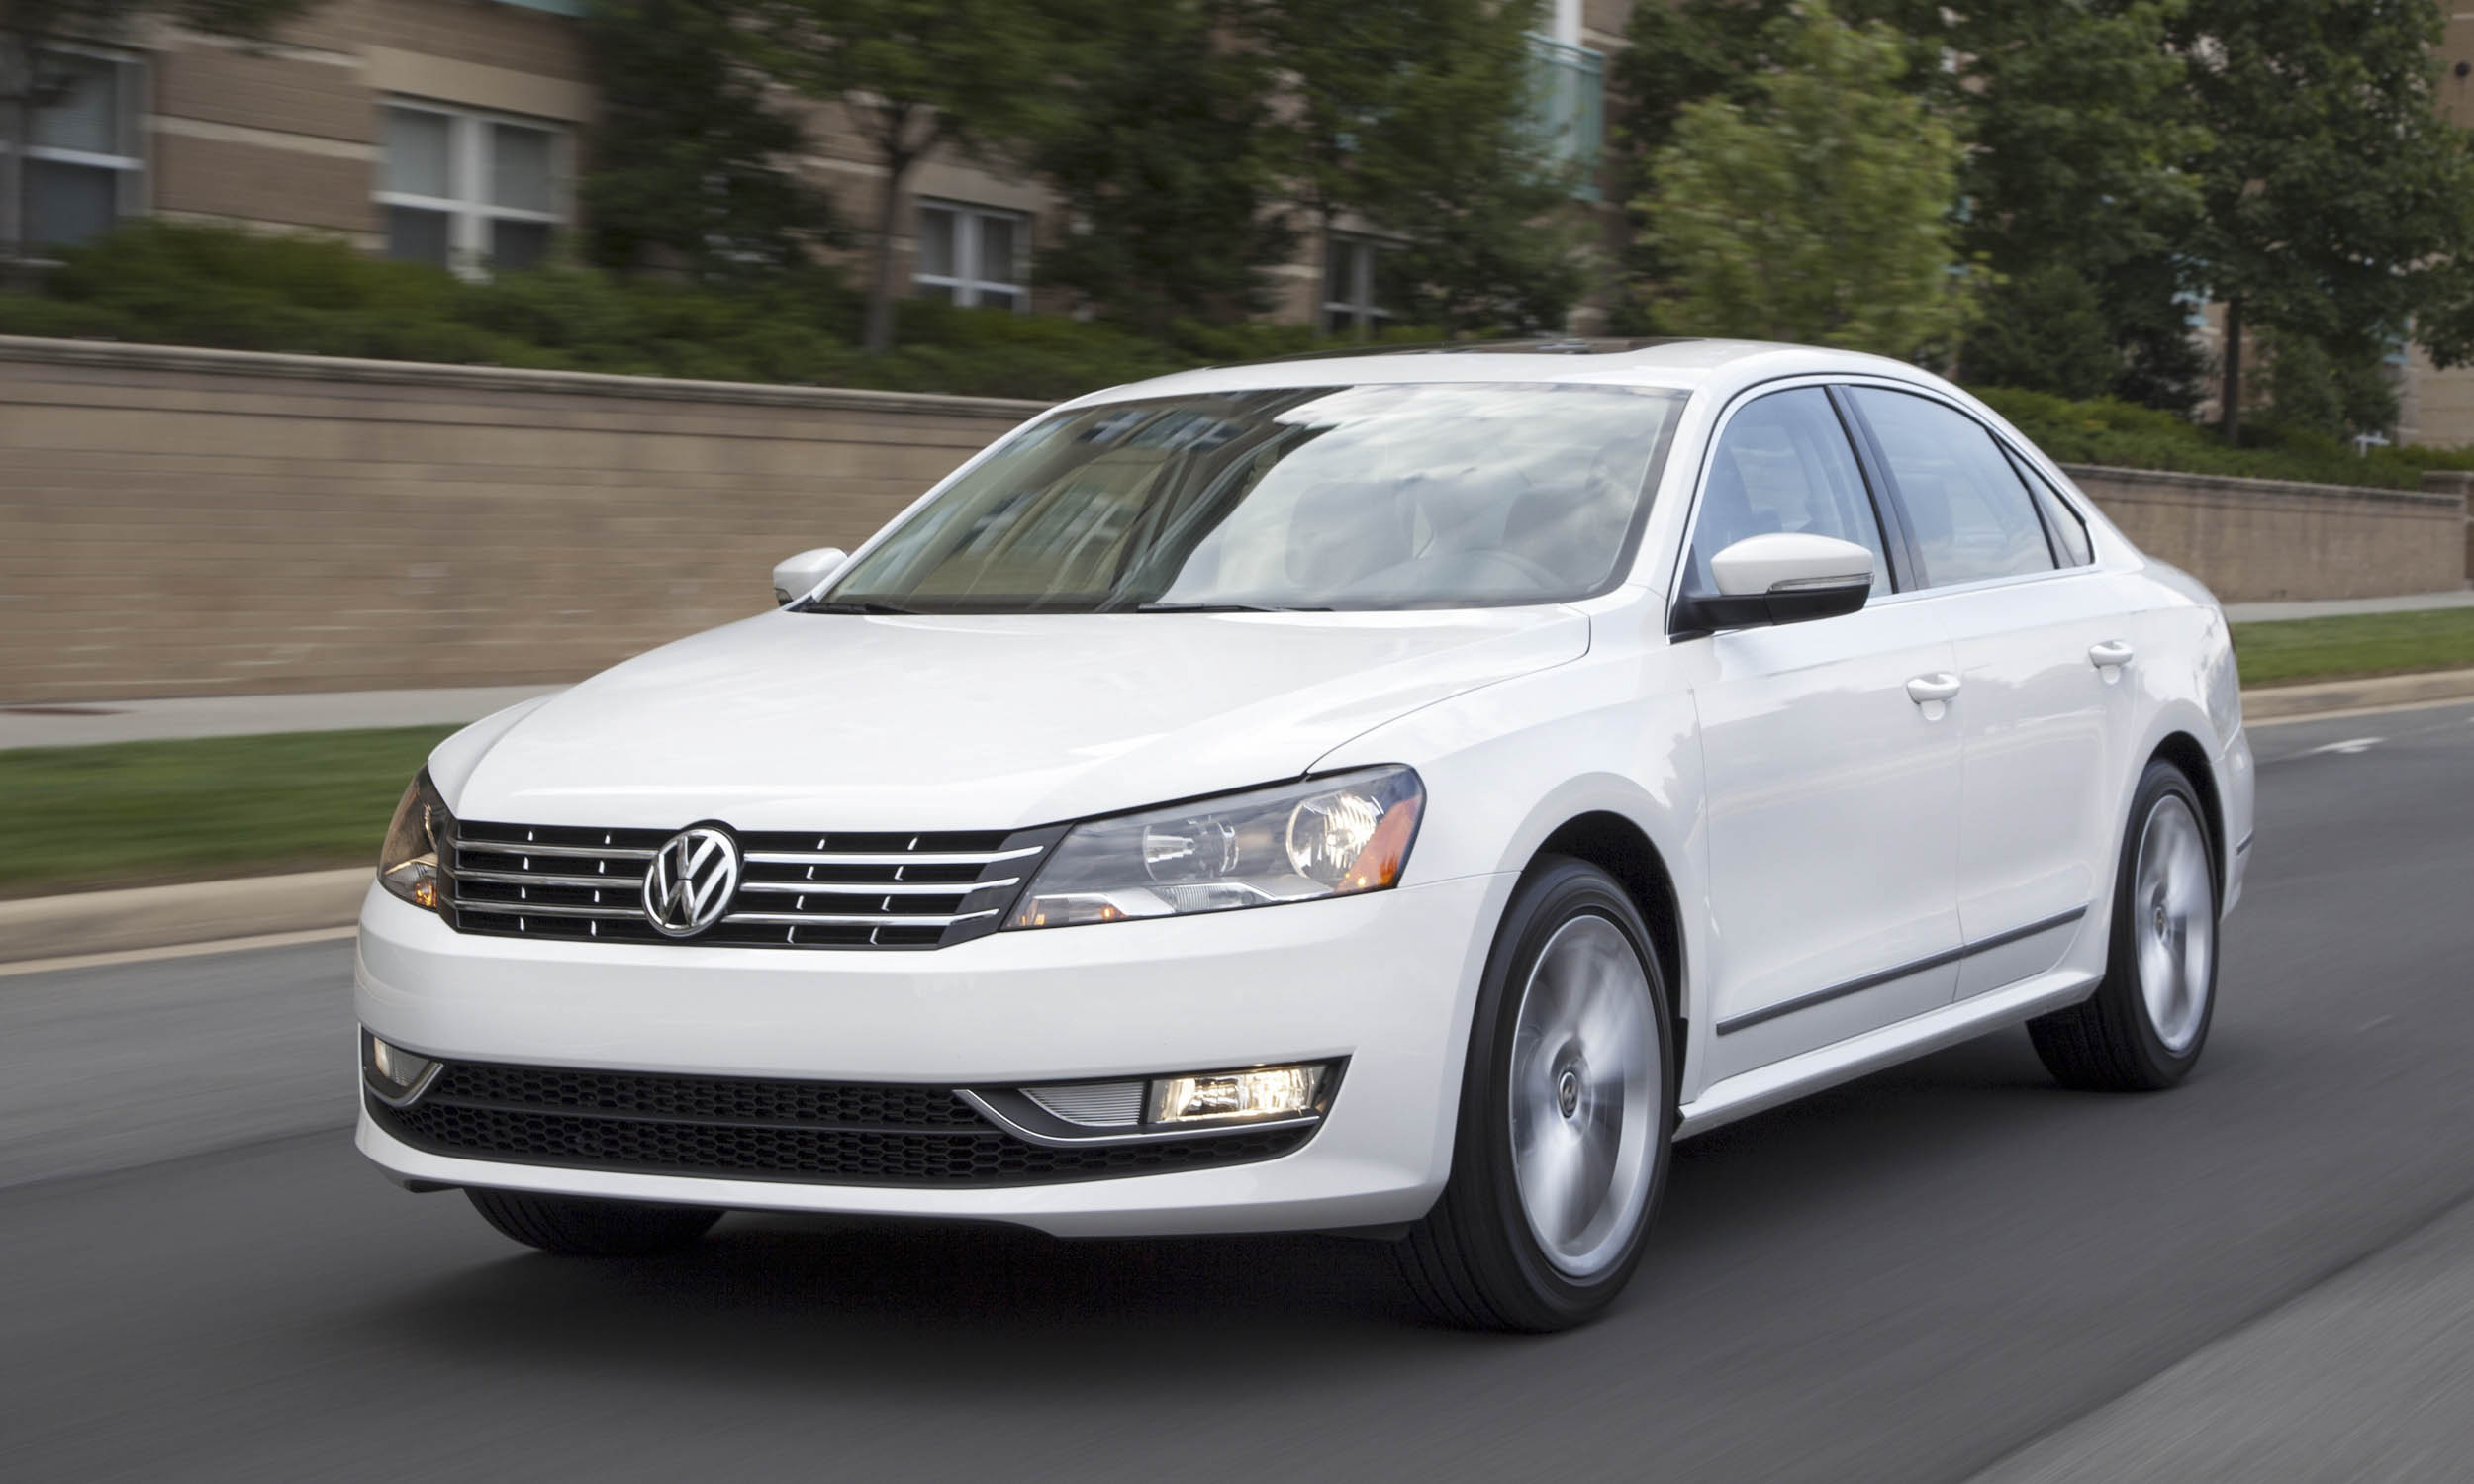 2013 Volkswagen Passat3?utm_source=rss&utm_medium=rss latest automotive safety recalls autonxt  at bakdesigns.co